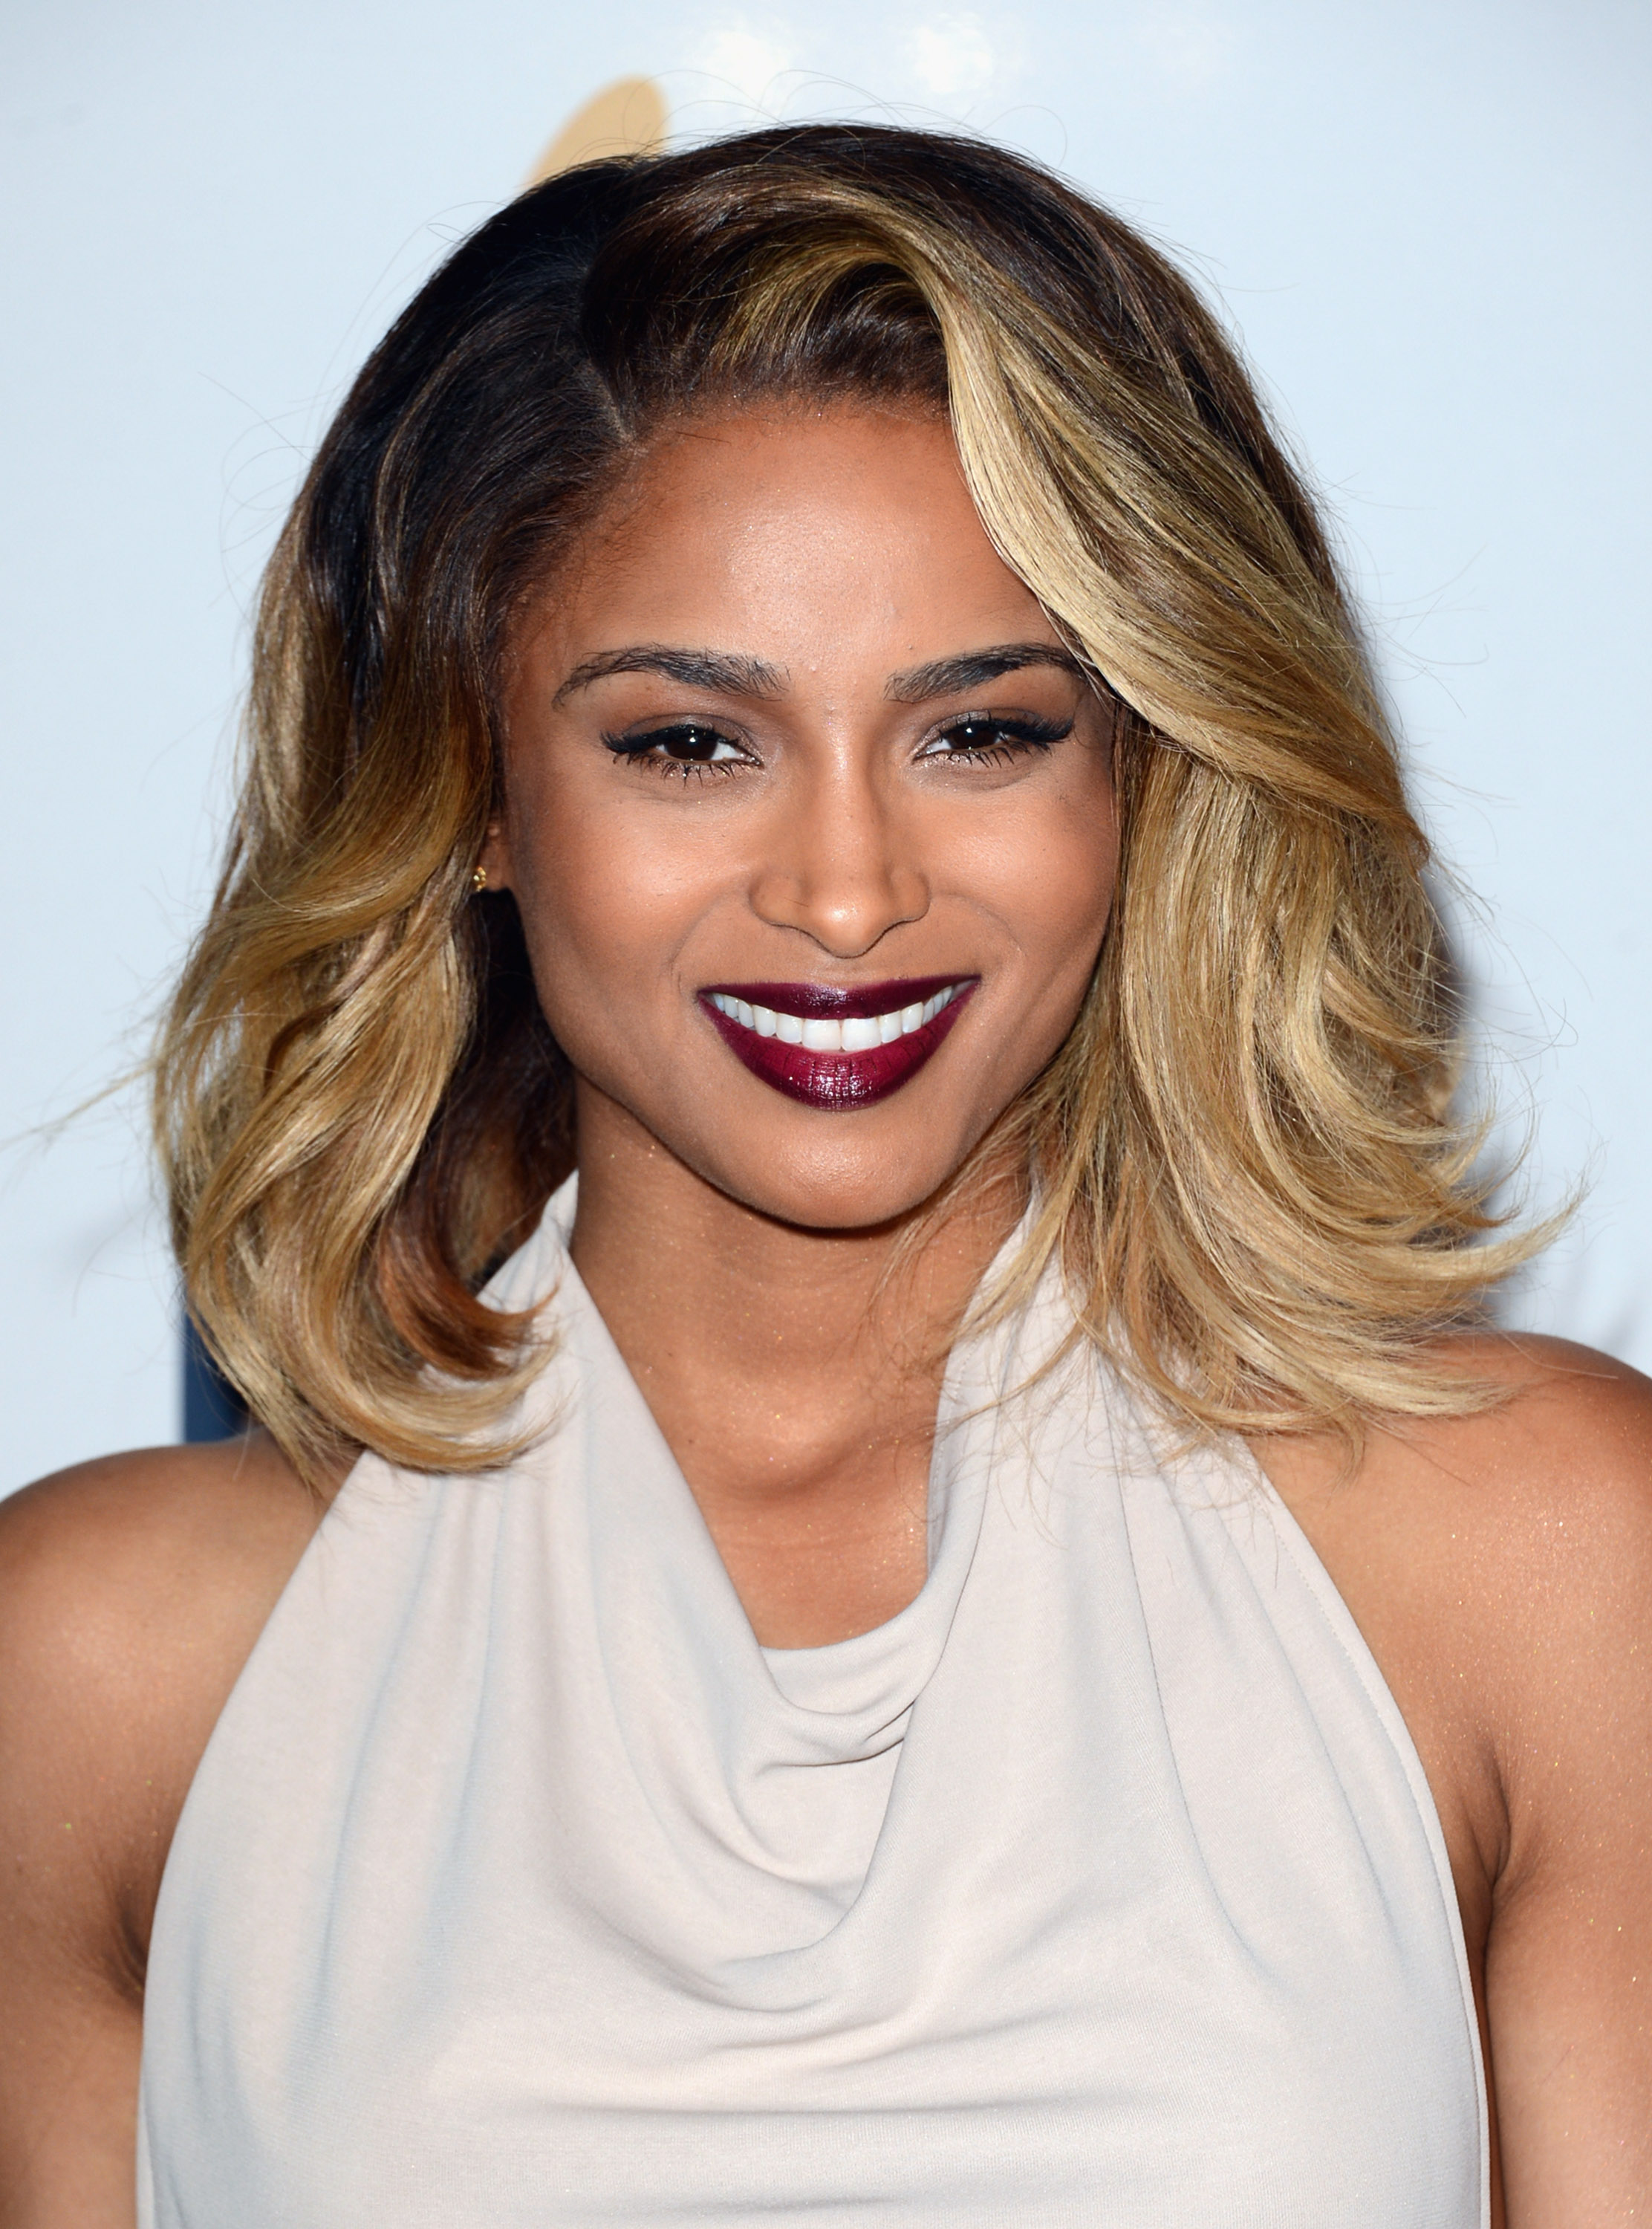 Lob Haircuts On Celebrities Best Long Bob Hairstyle Ideas - Bob hairstyle party